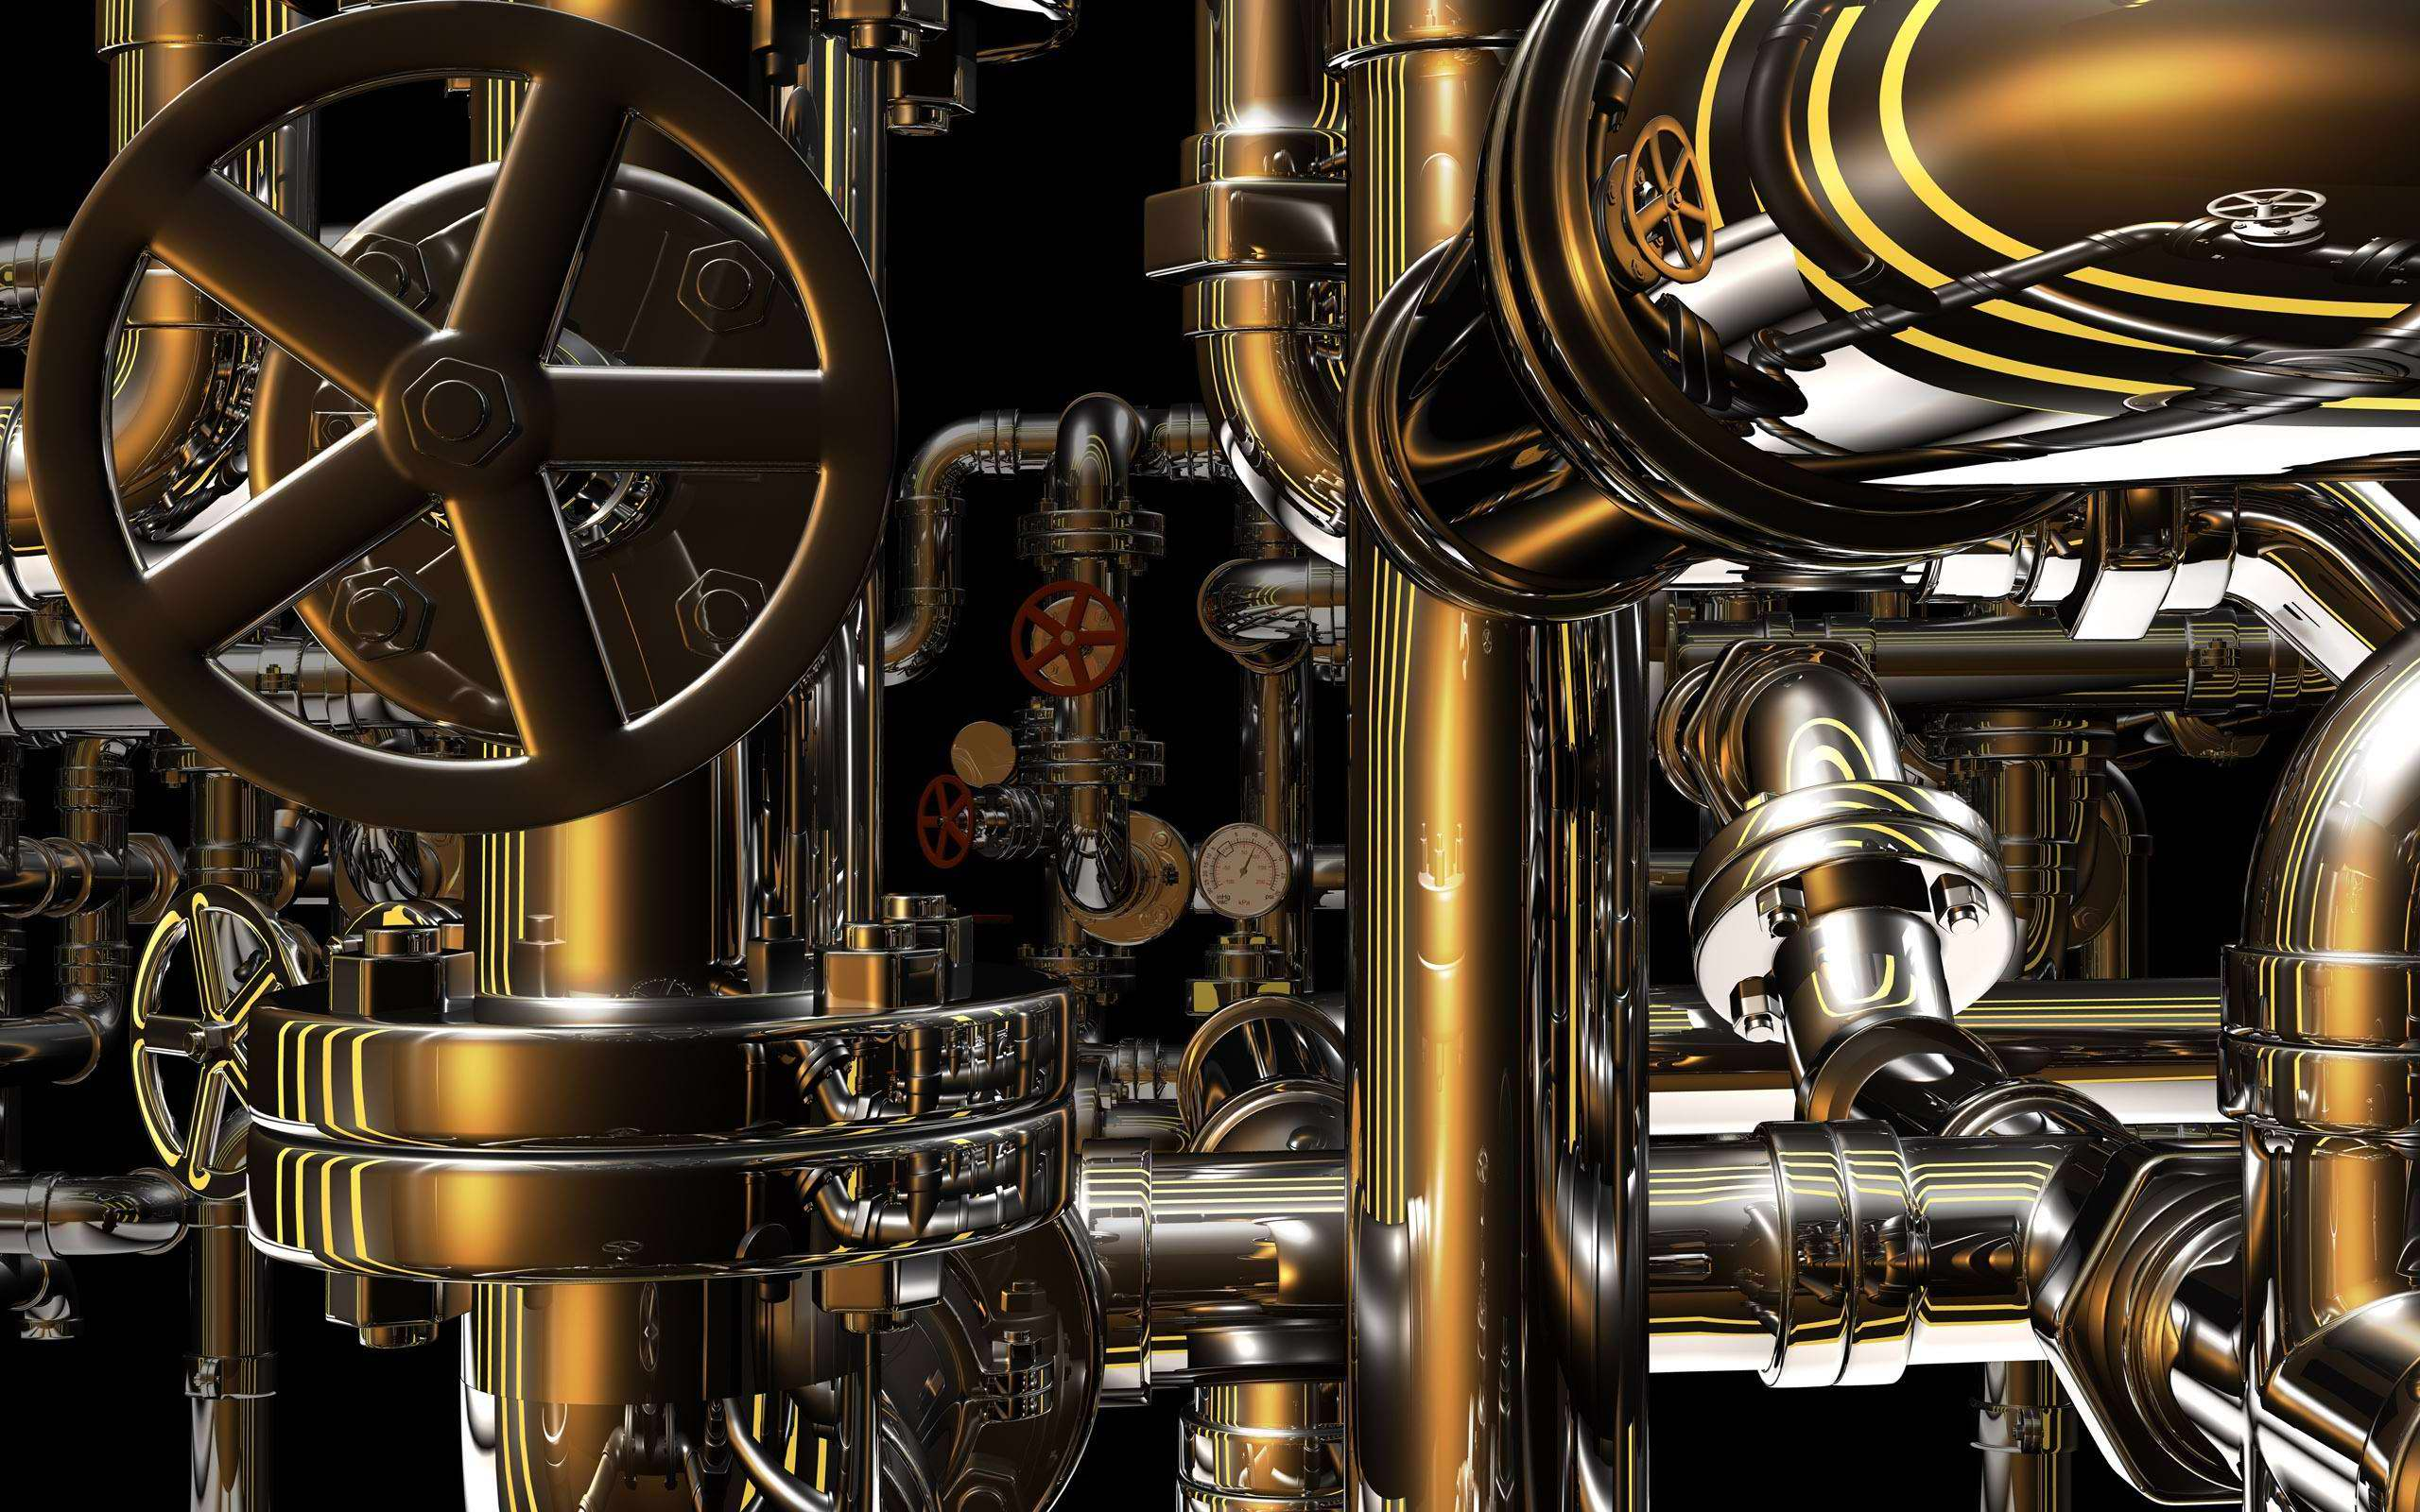 Mechanical-engineering-wallpaper-22.jpg